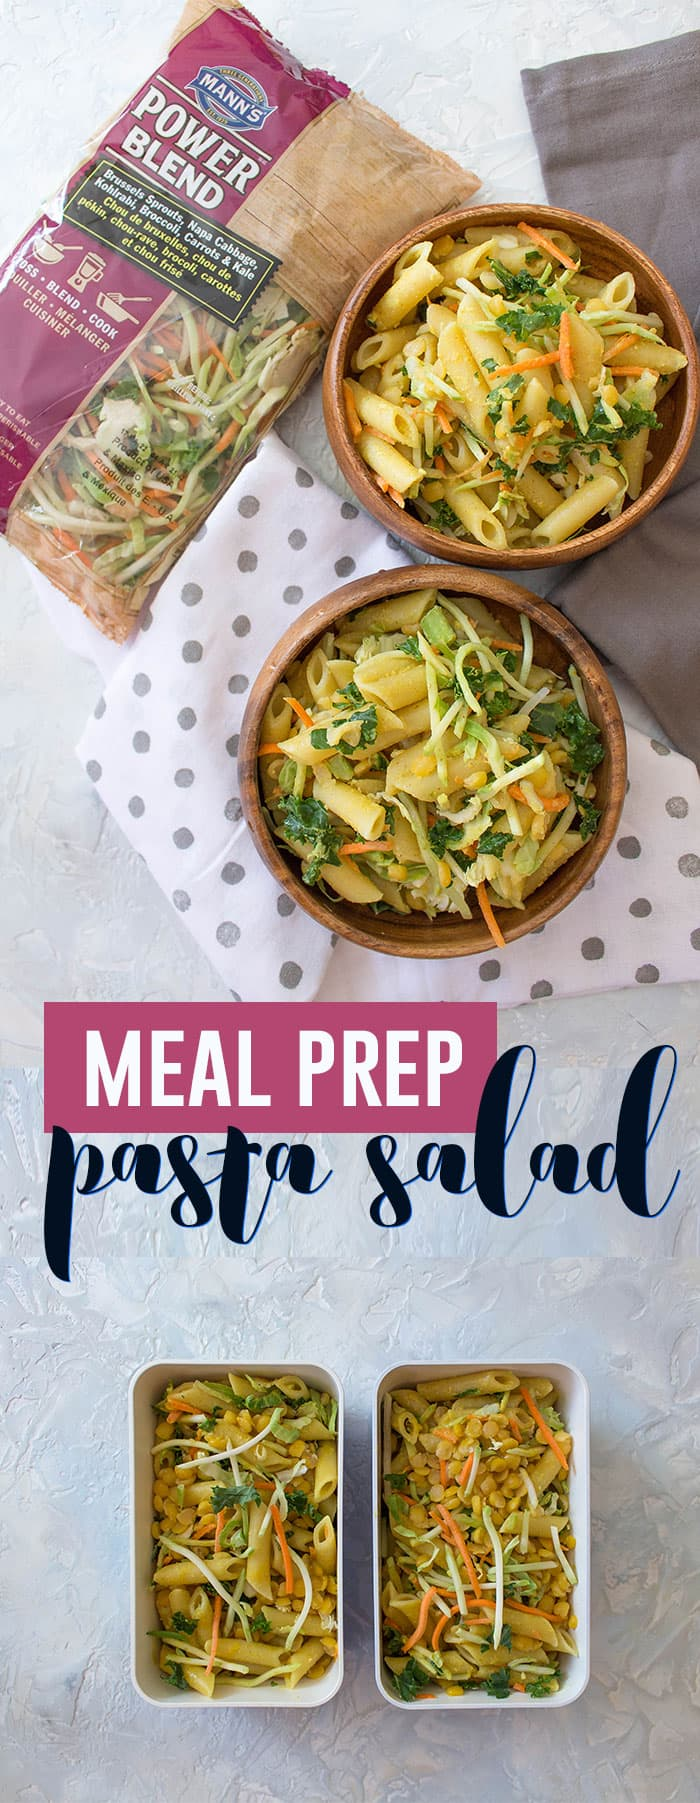 This meal prep pasta salad is perfect chilled for warm days or when you are heading somewhere without a microwave!